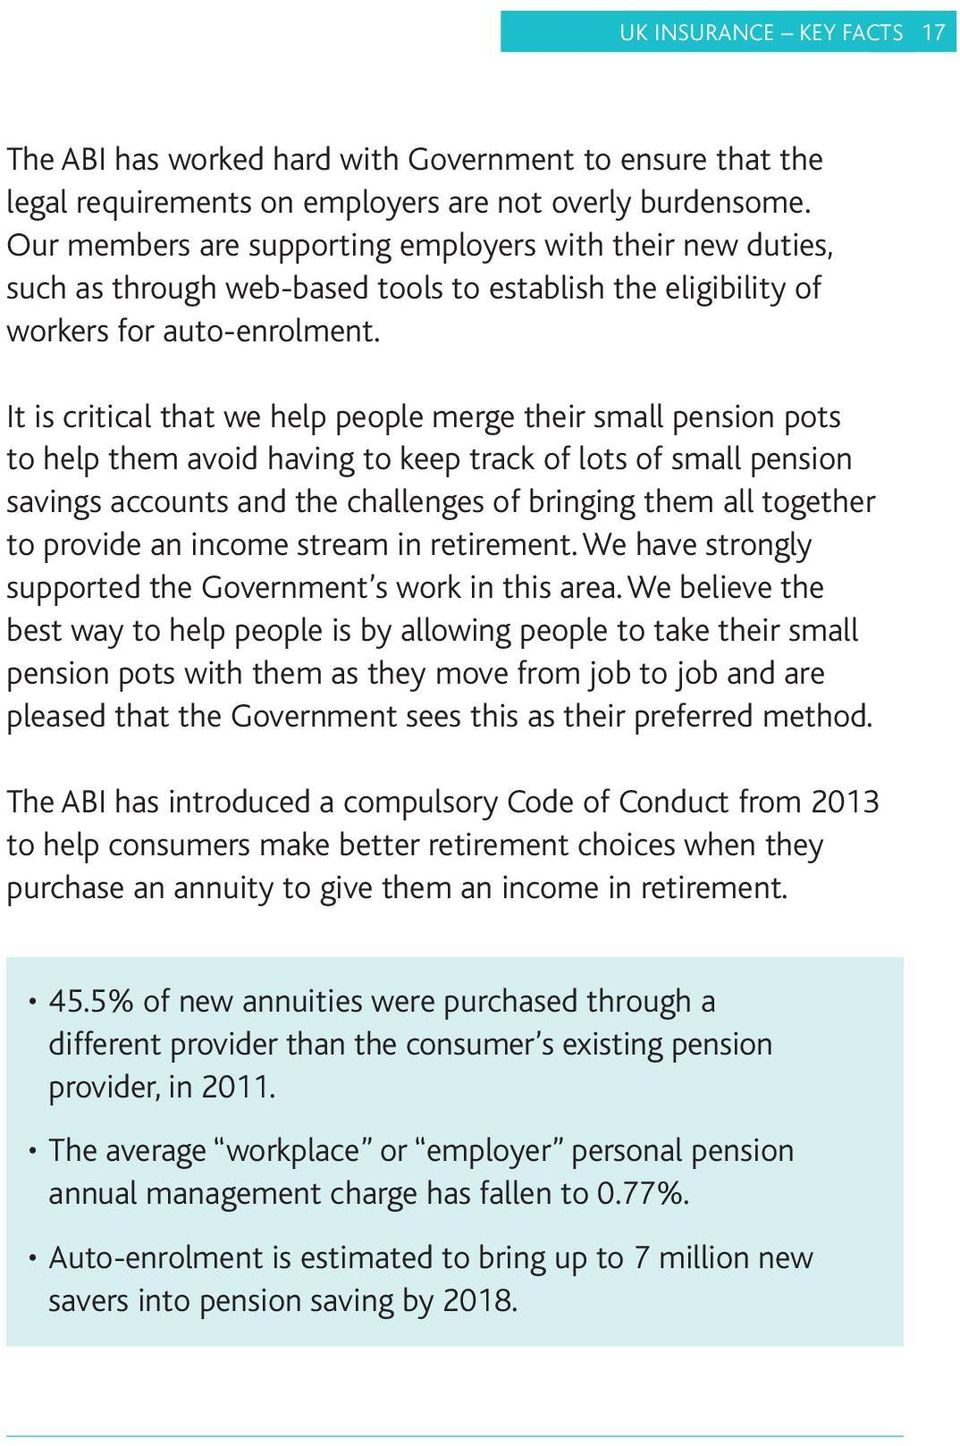 It is critical that we help people merge their small pension pots to help them avoid having to keep track of lots of small pension savings accounts and the challenges of bringing them all together to